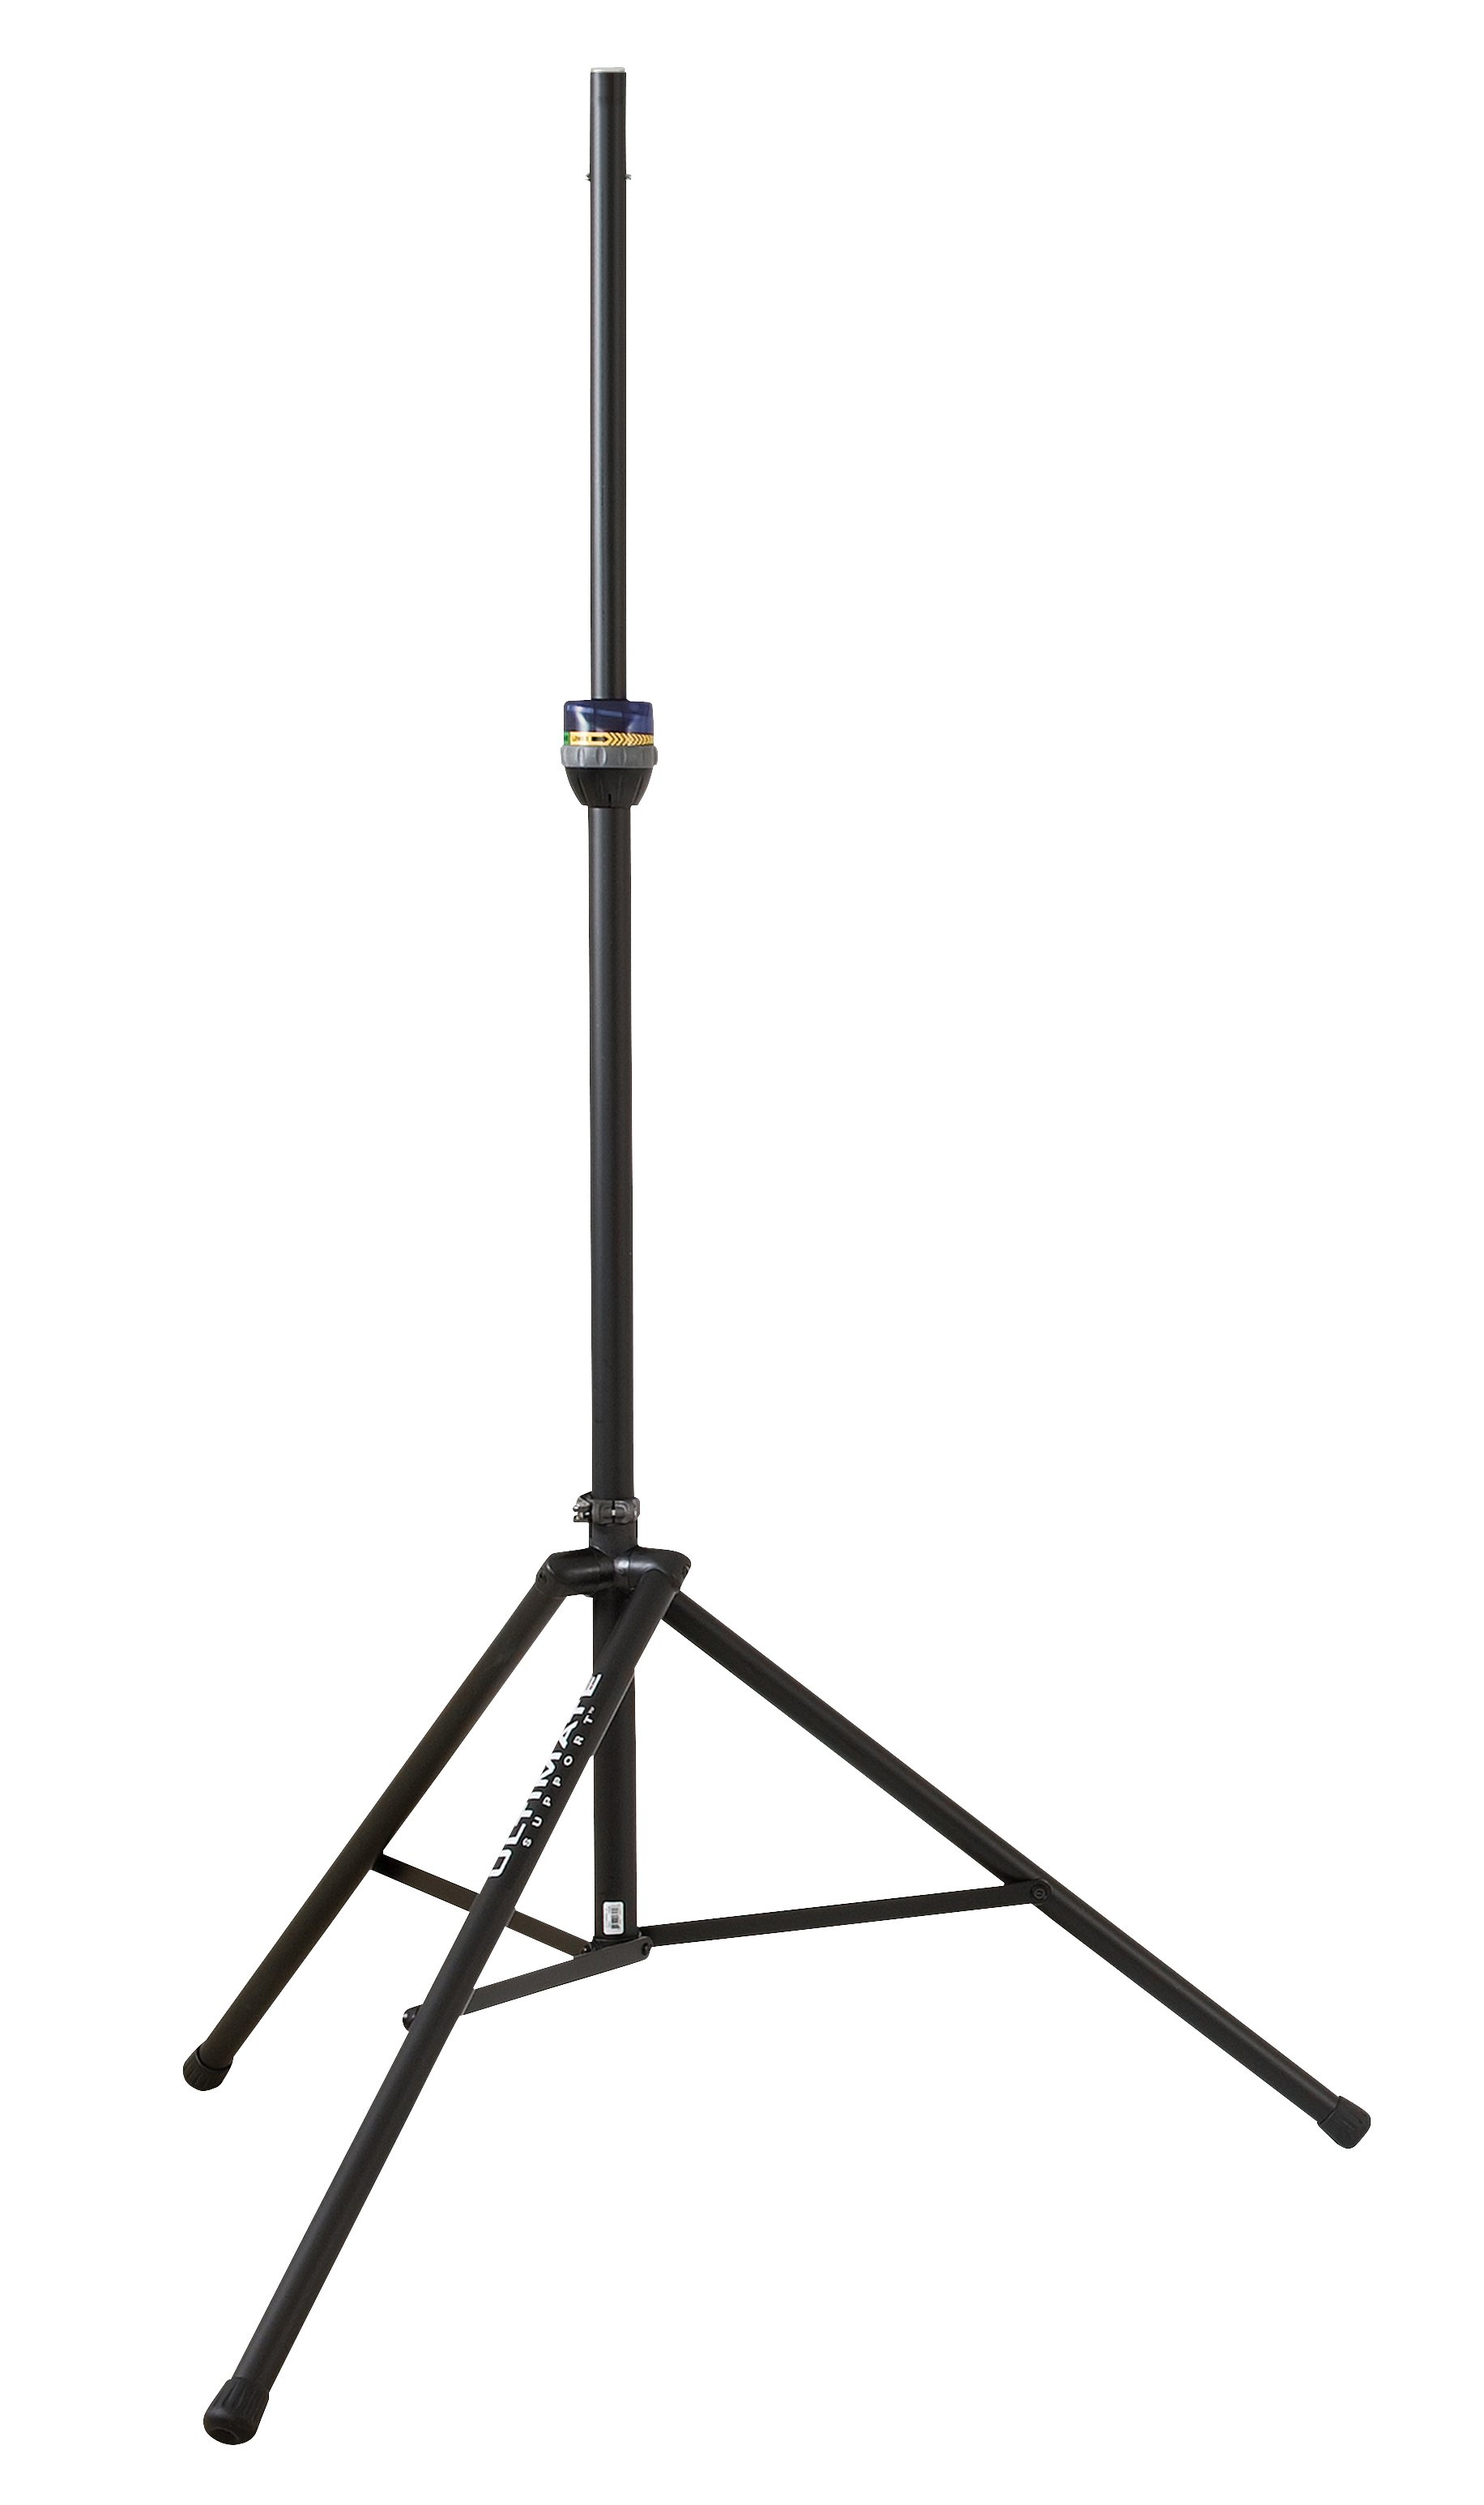 Rent Speaker Stands Toronto - Ultimate TS-99B